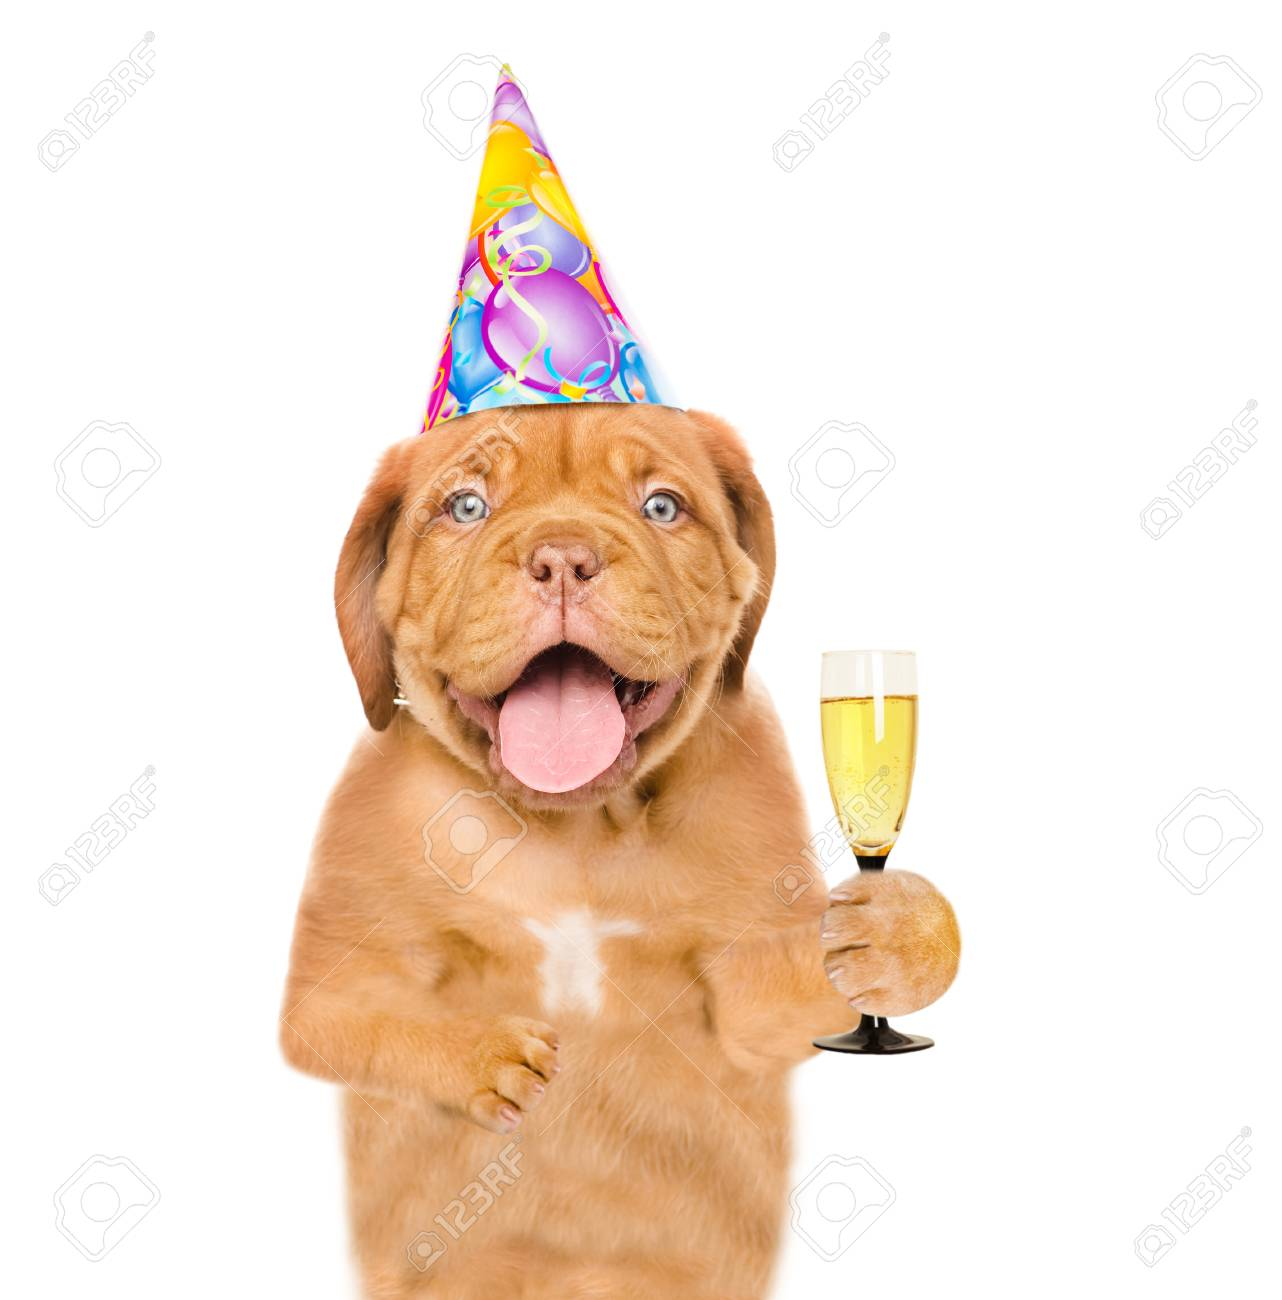 Dog In Birthday Hat Holding Glass Of Champagne Isolated On White Background Stock Photo